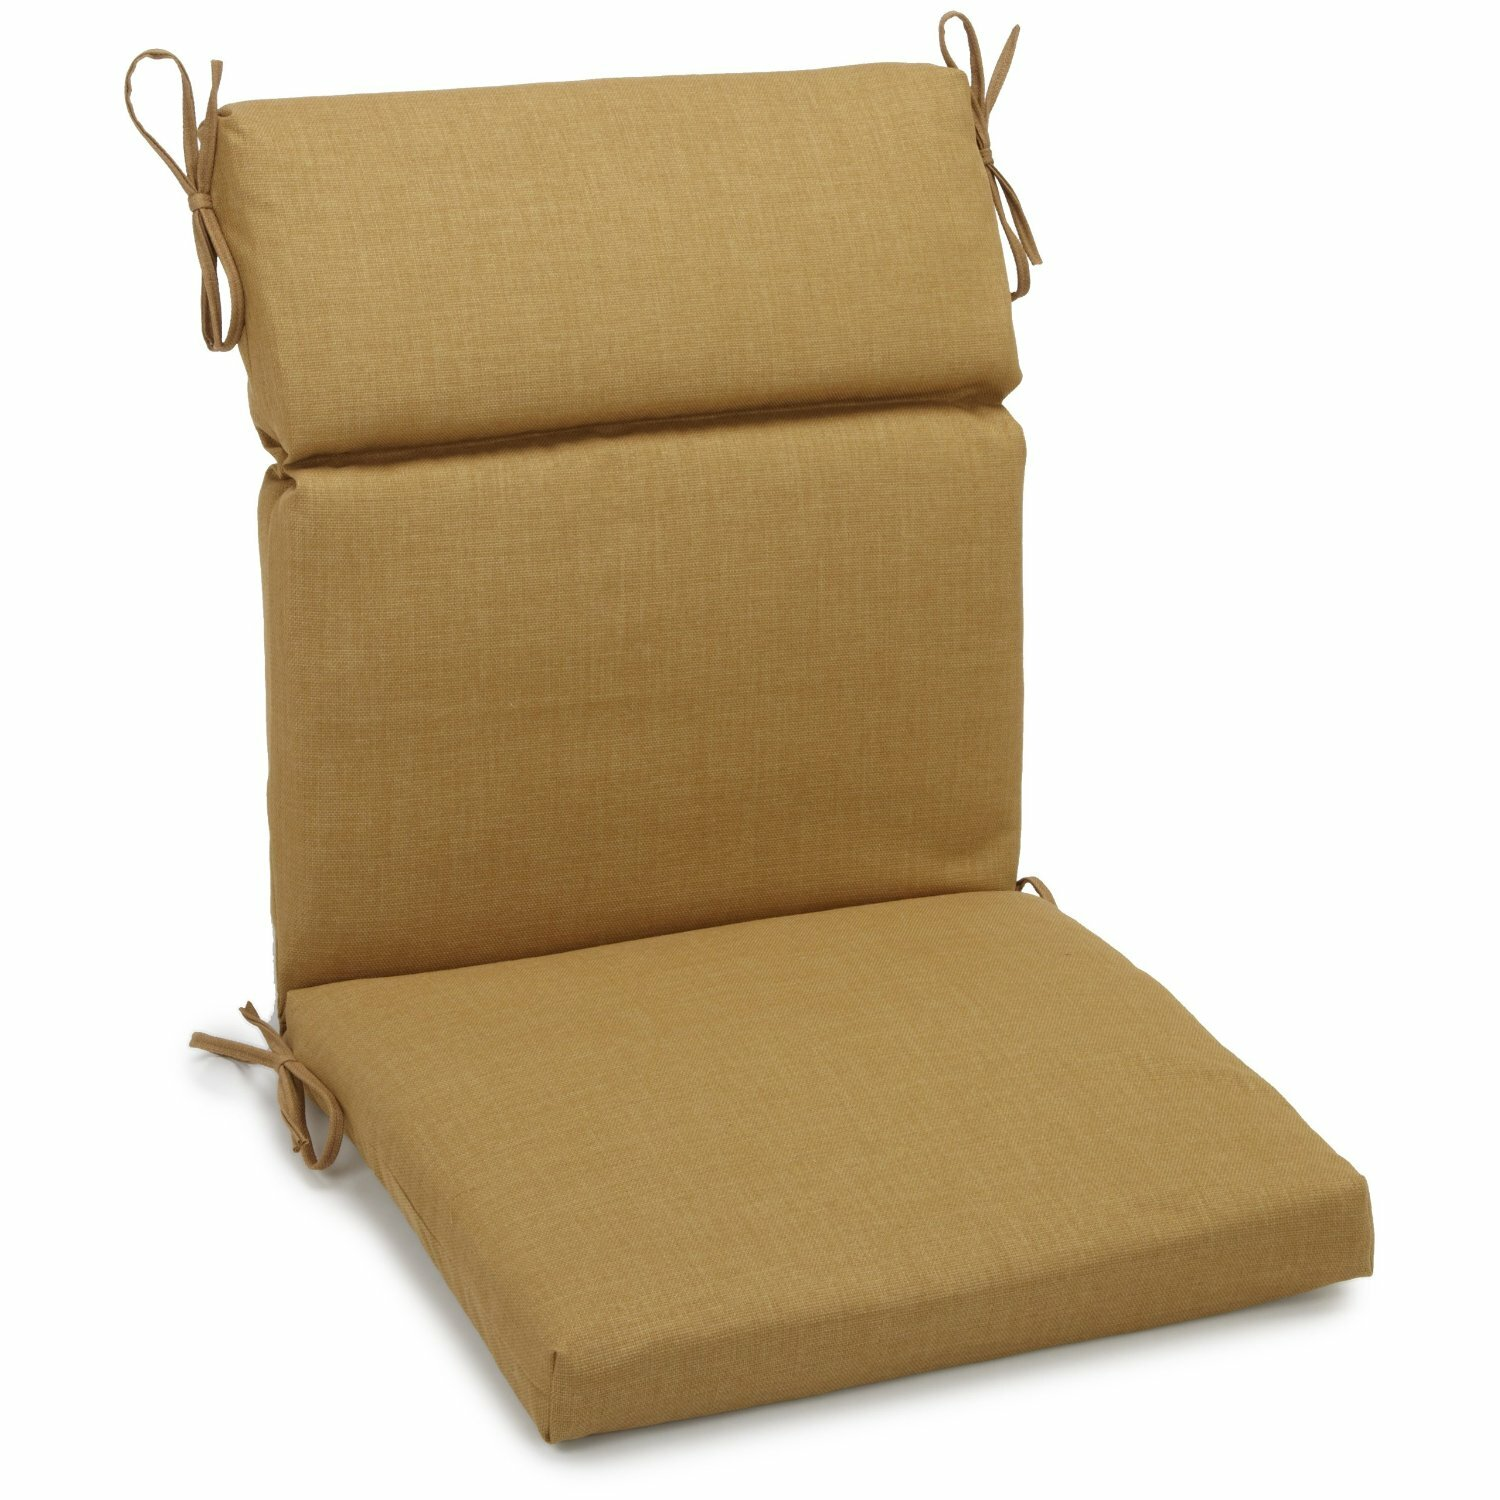 Blazing Needles Outdoor Adirondack Chair Cushion & Reviews  Wayfair